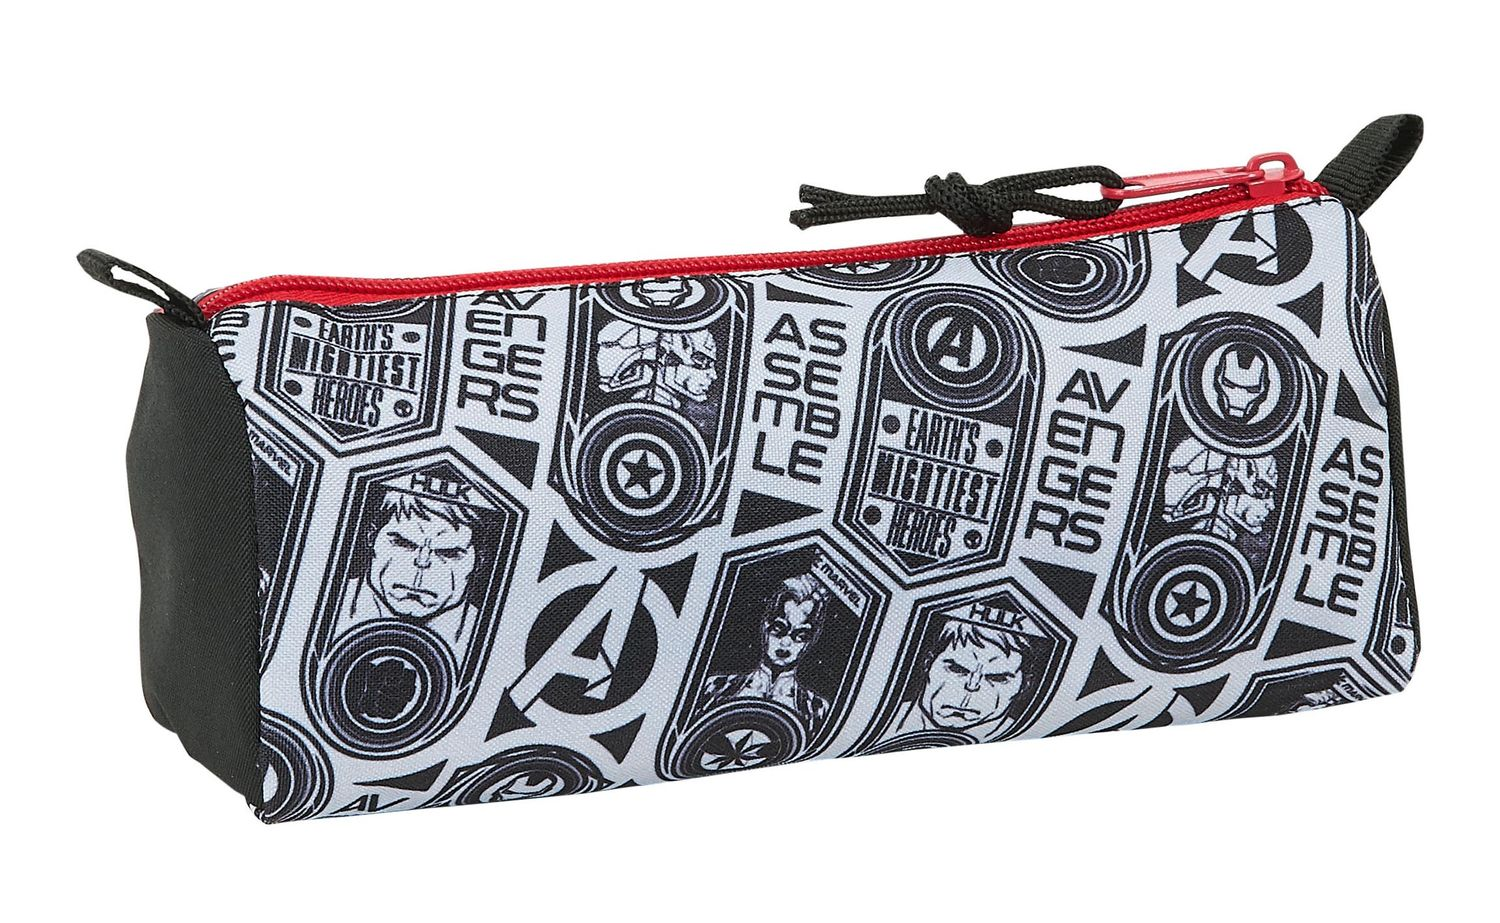 Marvel AVENGERS HEROES Square Pencil Case – image 2